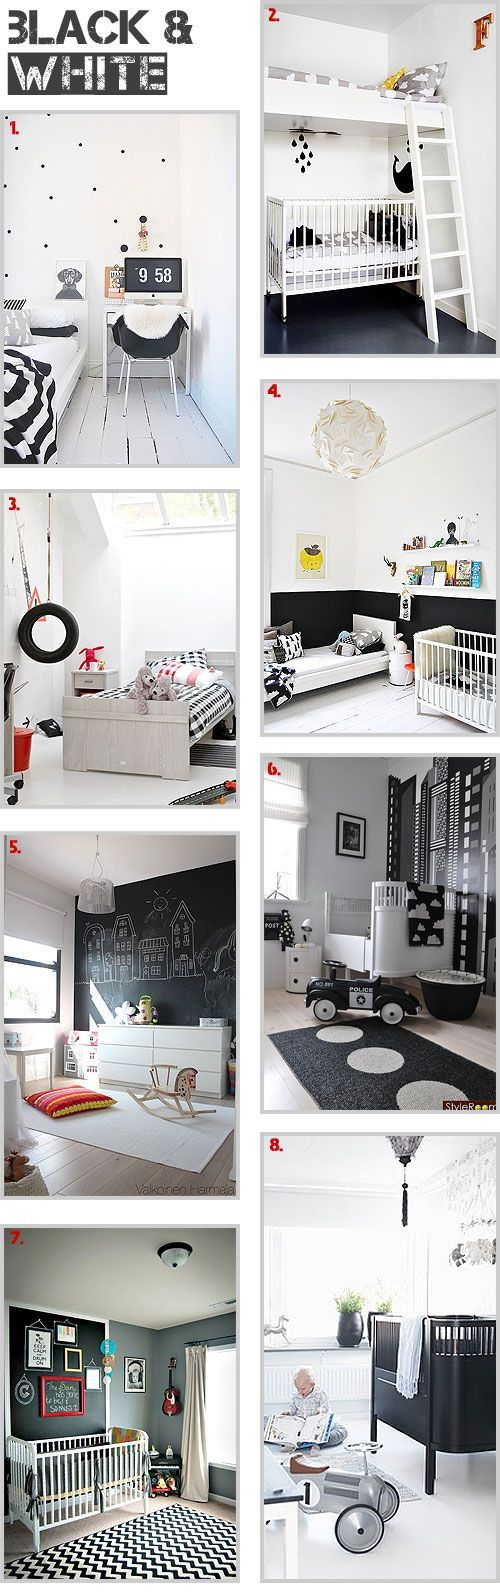 Black & white in childrens room and nurseries.